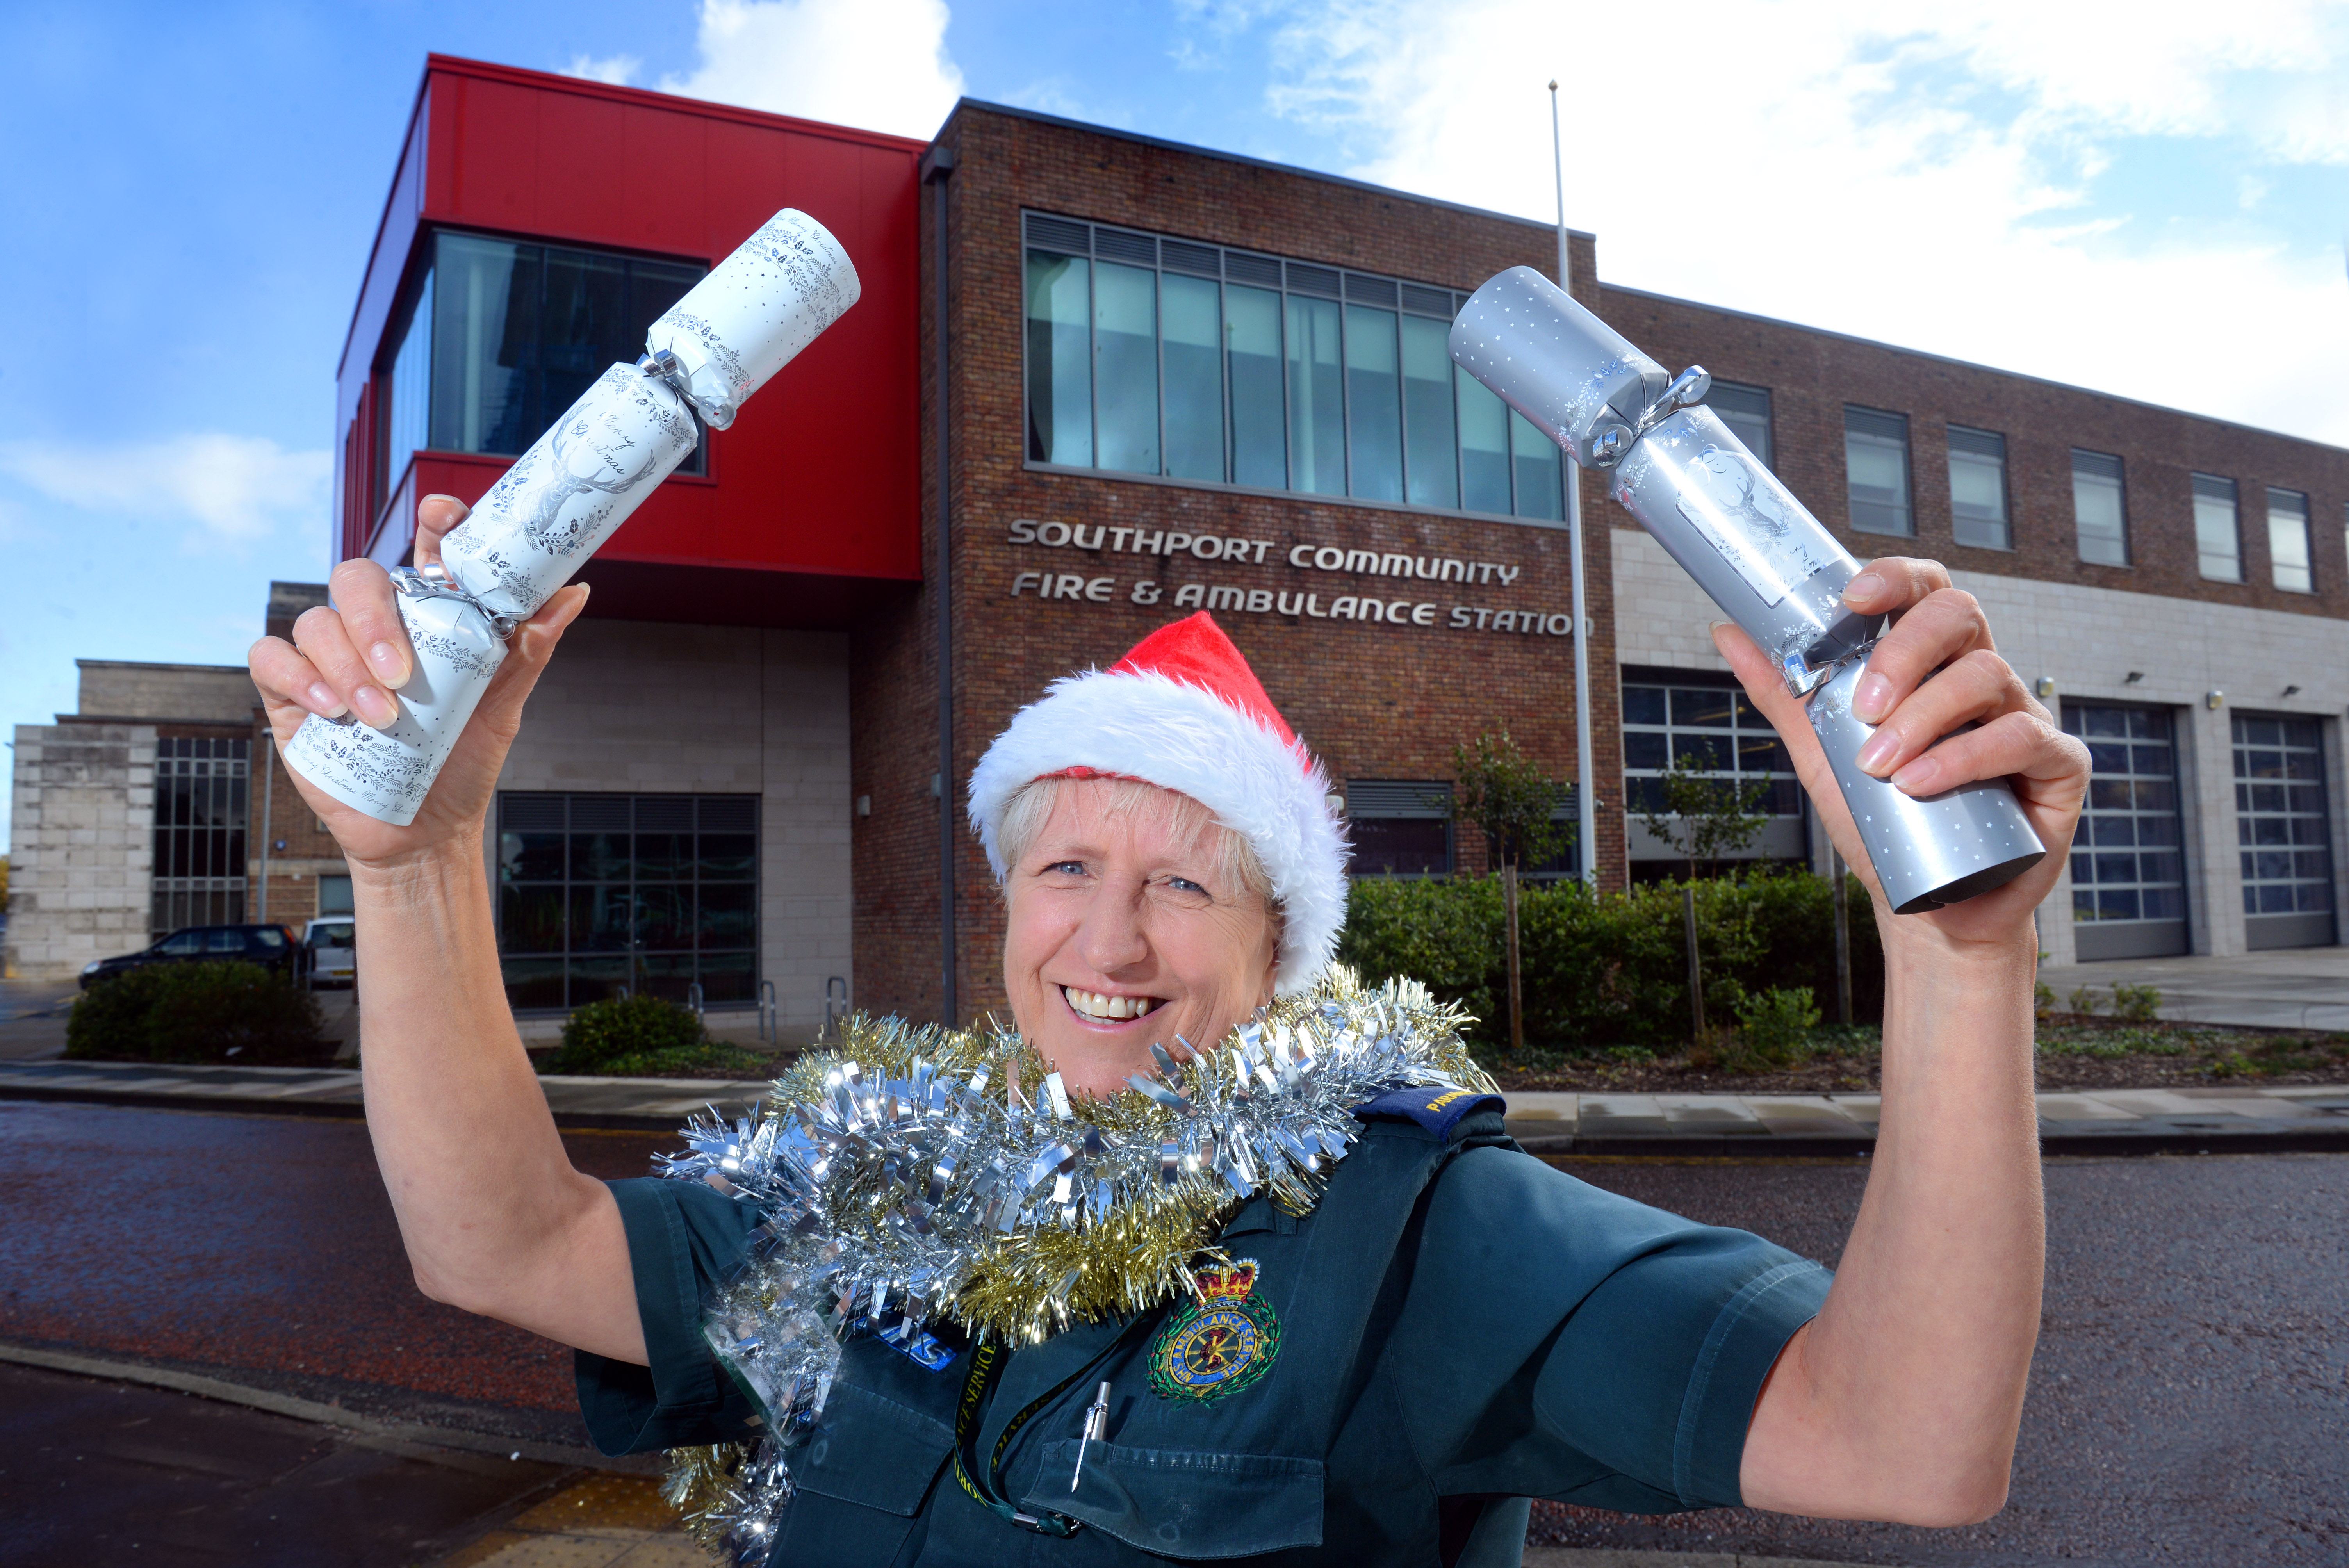 Paramedic reached finals of a national award for her pioneering community work